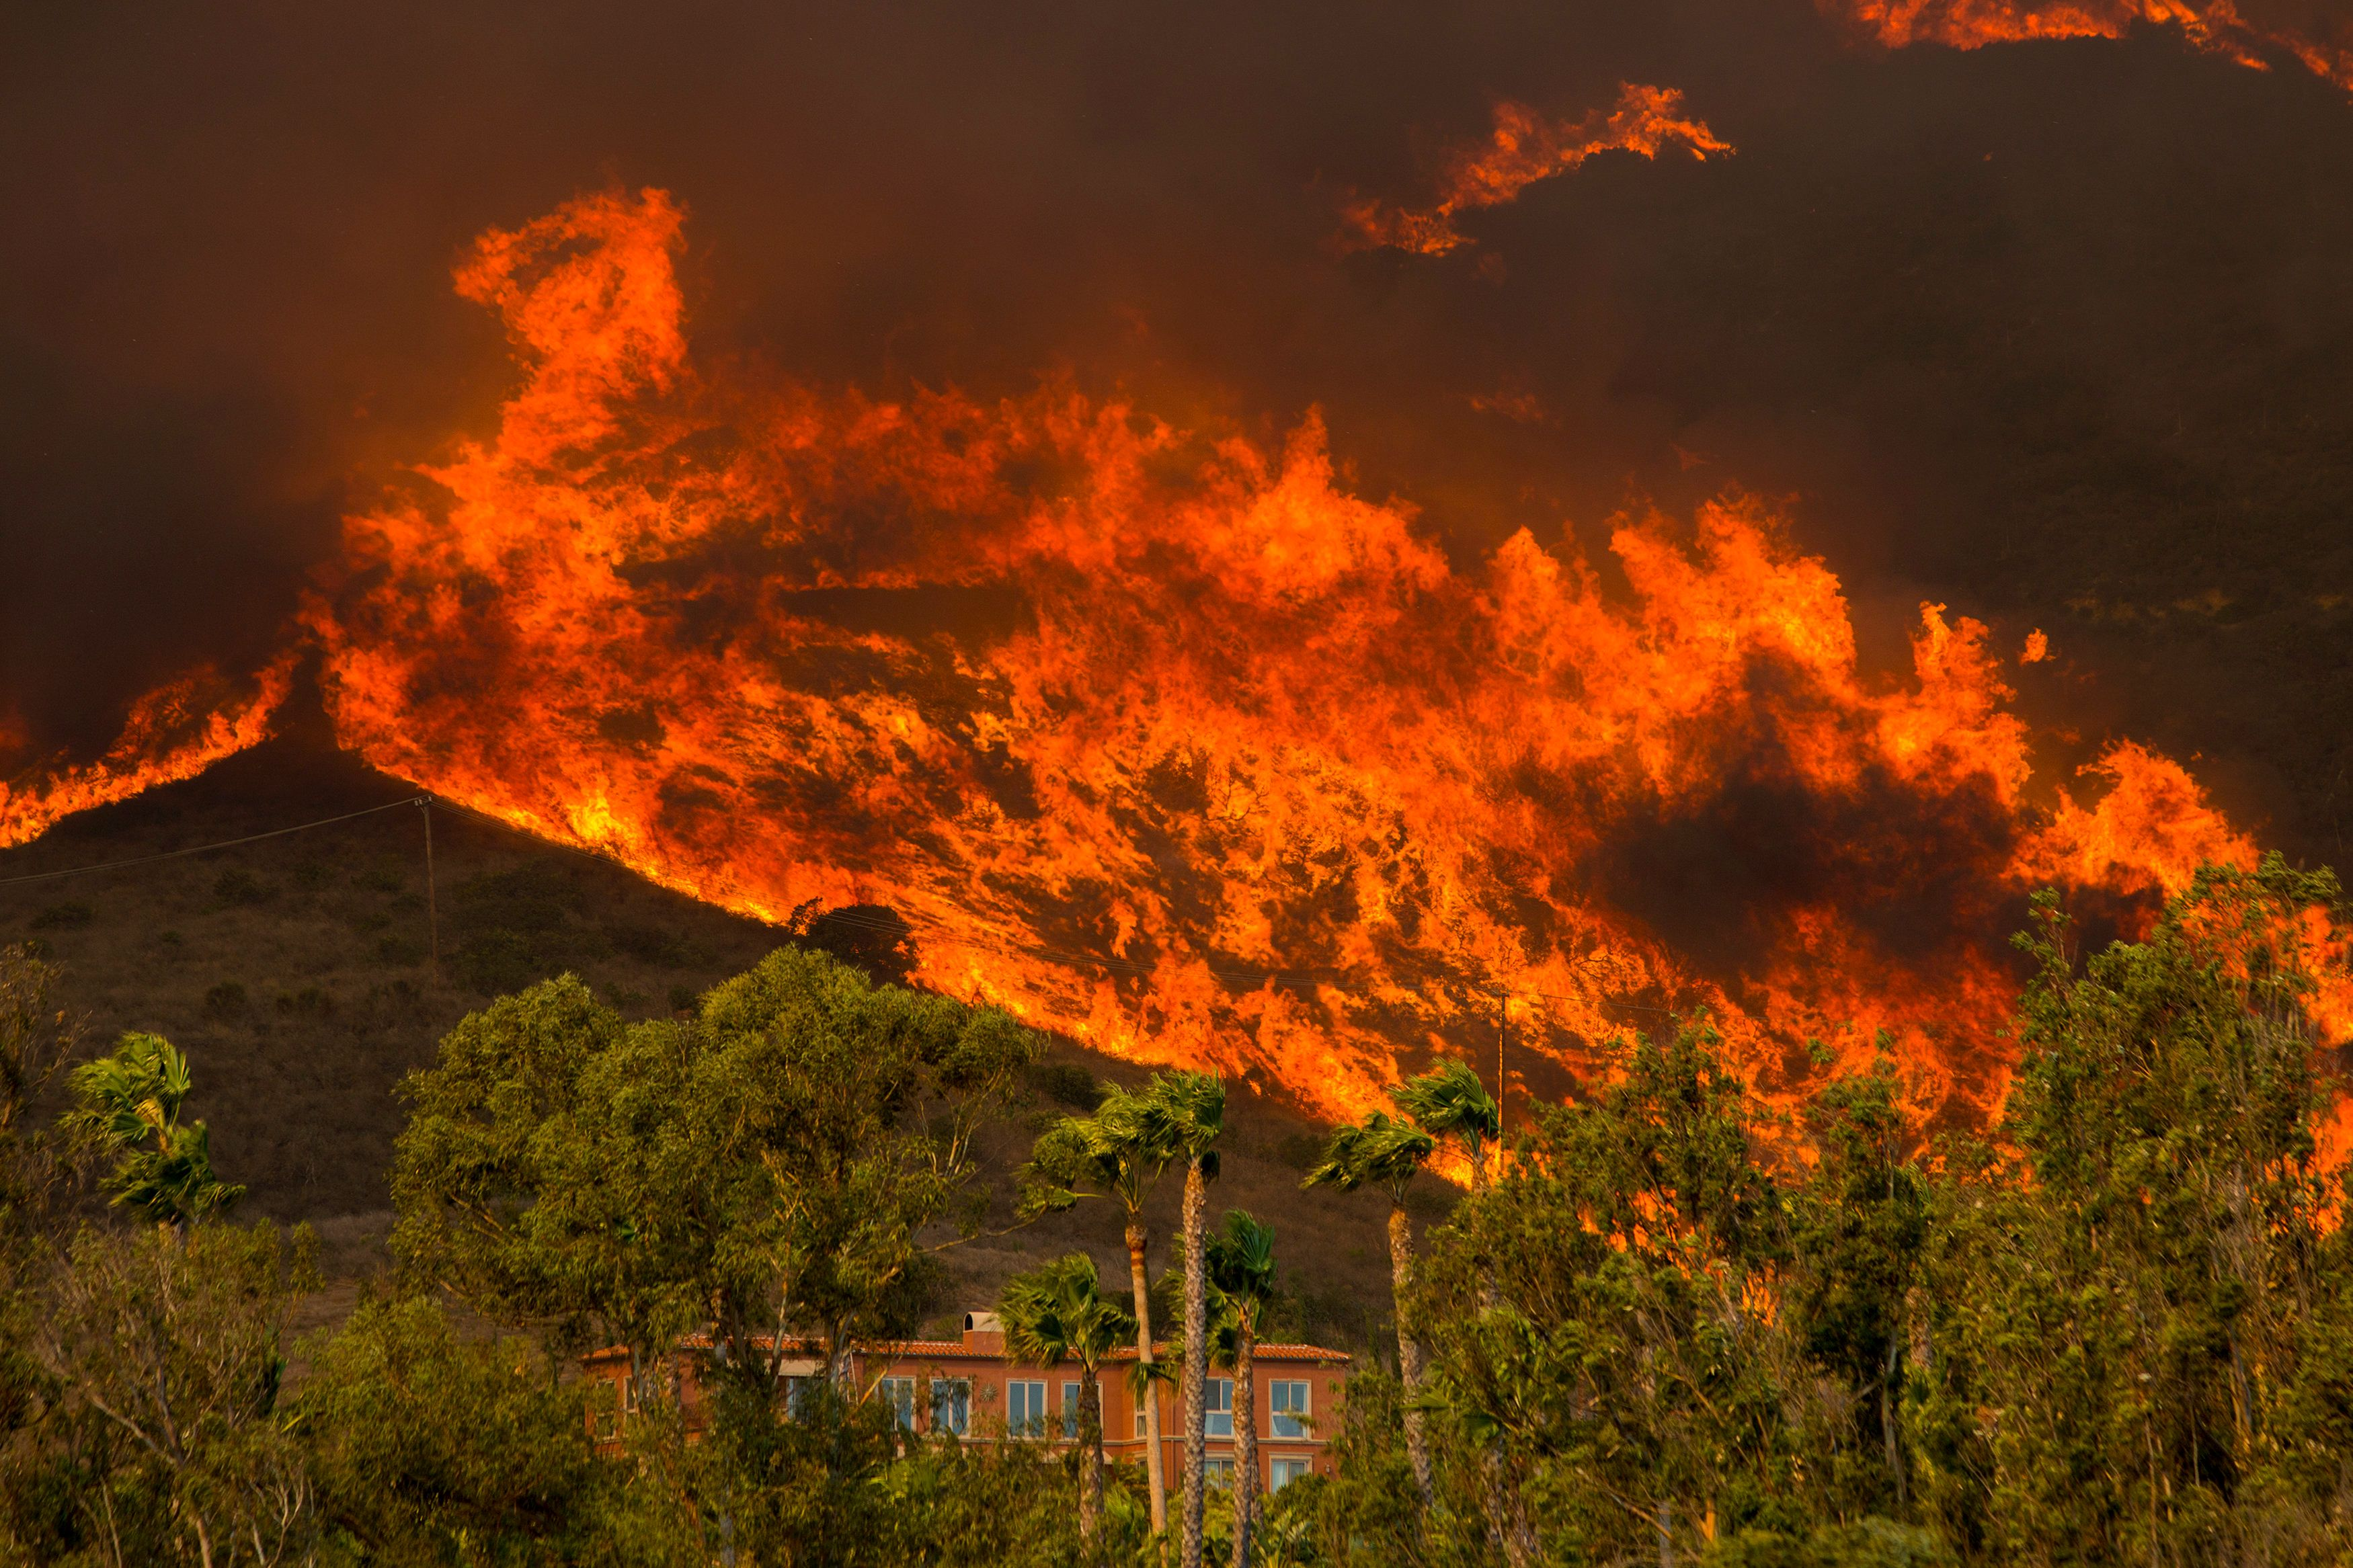 MALIBU, CA - NOVEMBER 09: The Woolsey Fire approaches homes on November 9, 2018 in Malibu, California. About 75,000 homes have been evacuated in Los Angeles and Ventura counties due to two fires in the region.(Photo by David McNew/Getty Images)